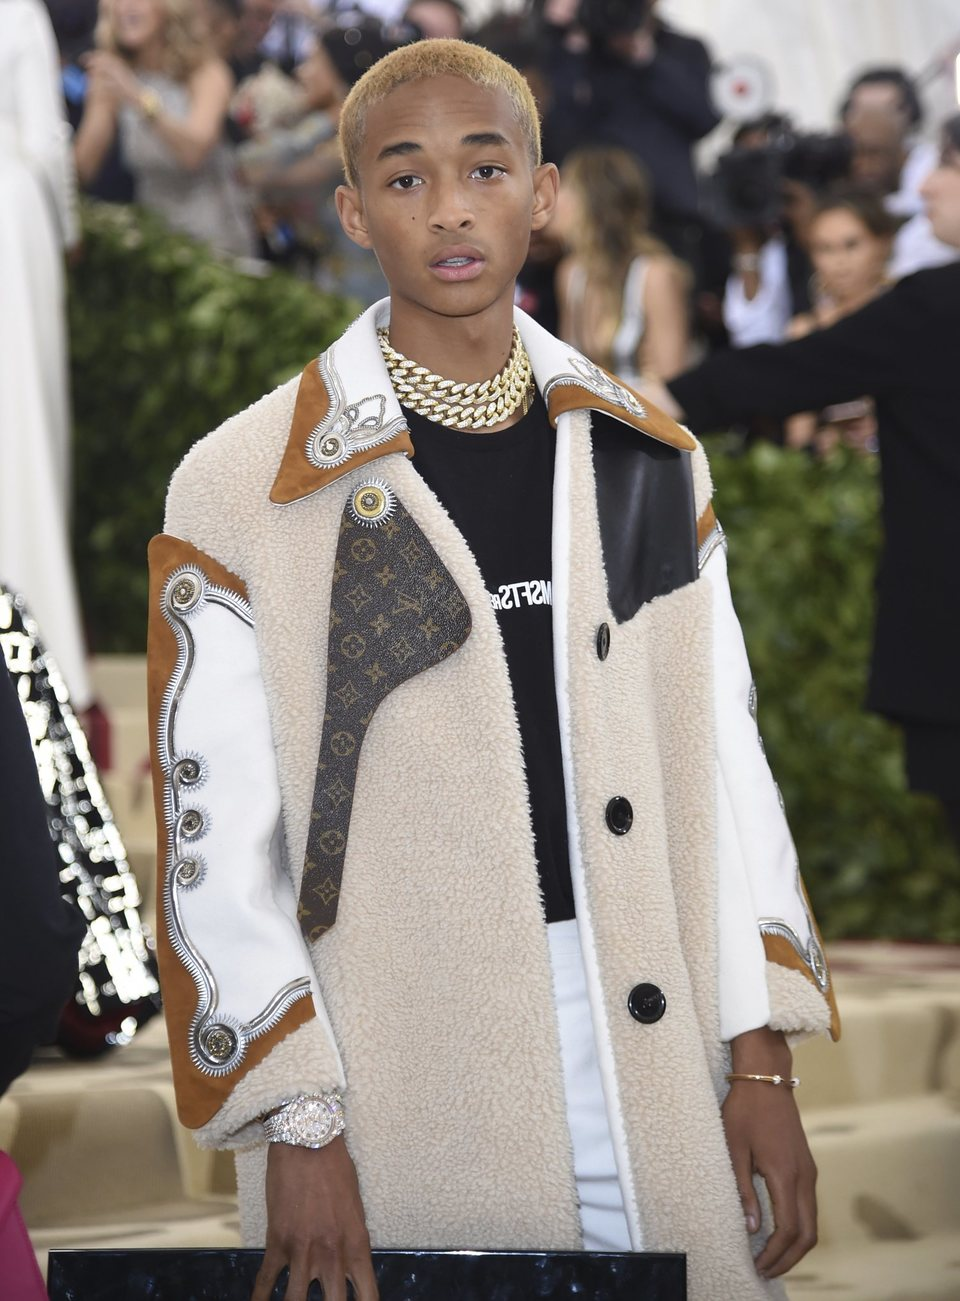 Jaden Smith at the Met Gala 2018